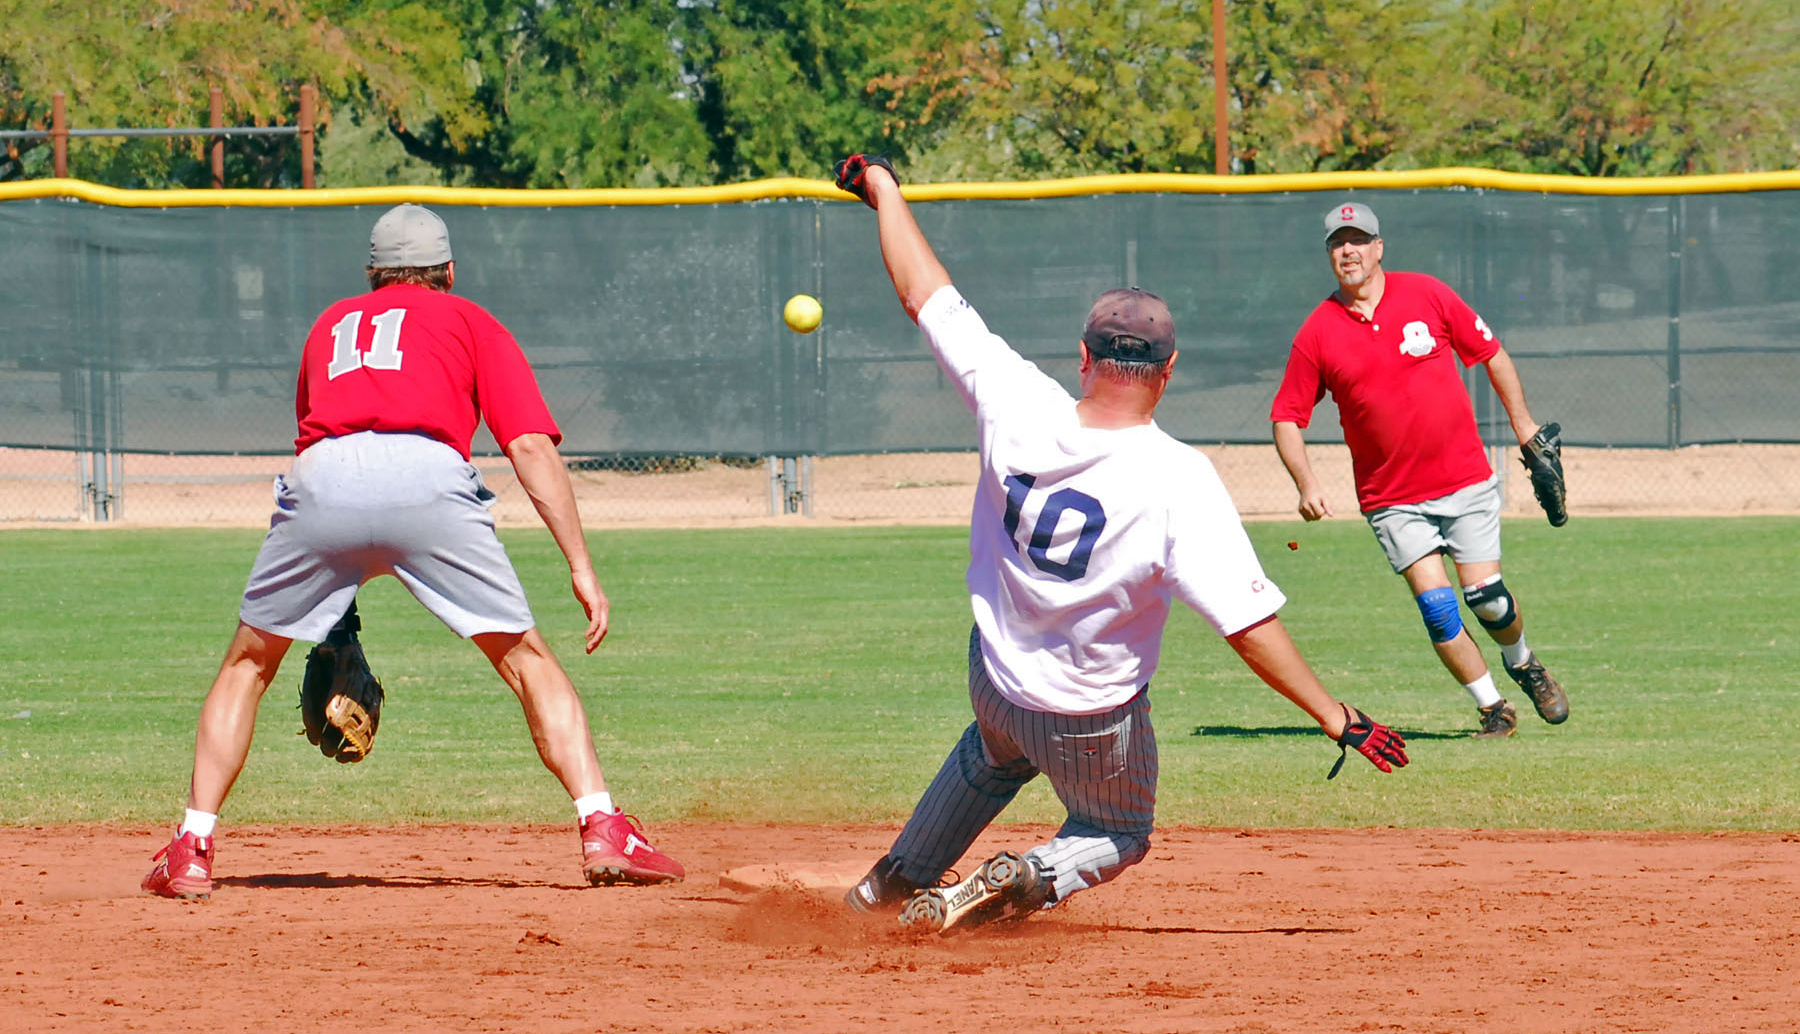 terry hennessy sliding into second base at a baseball championship game in phoenix arizona